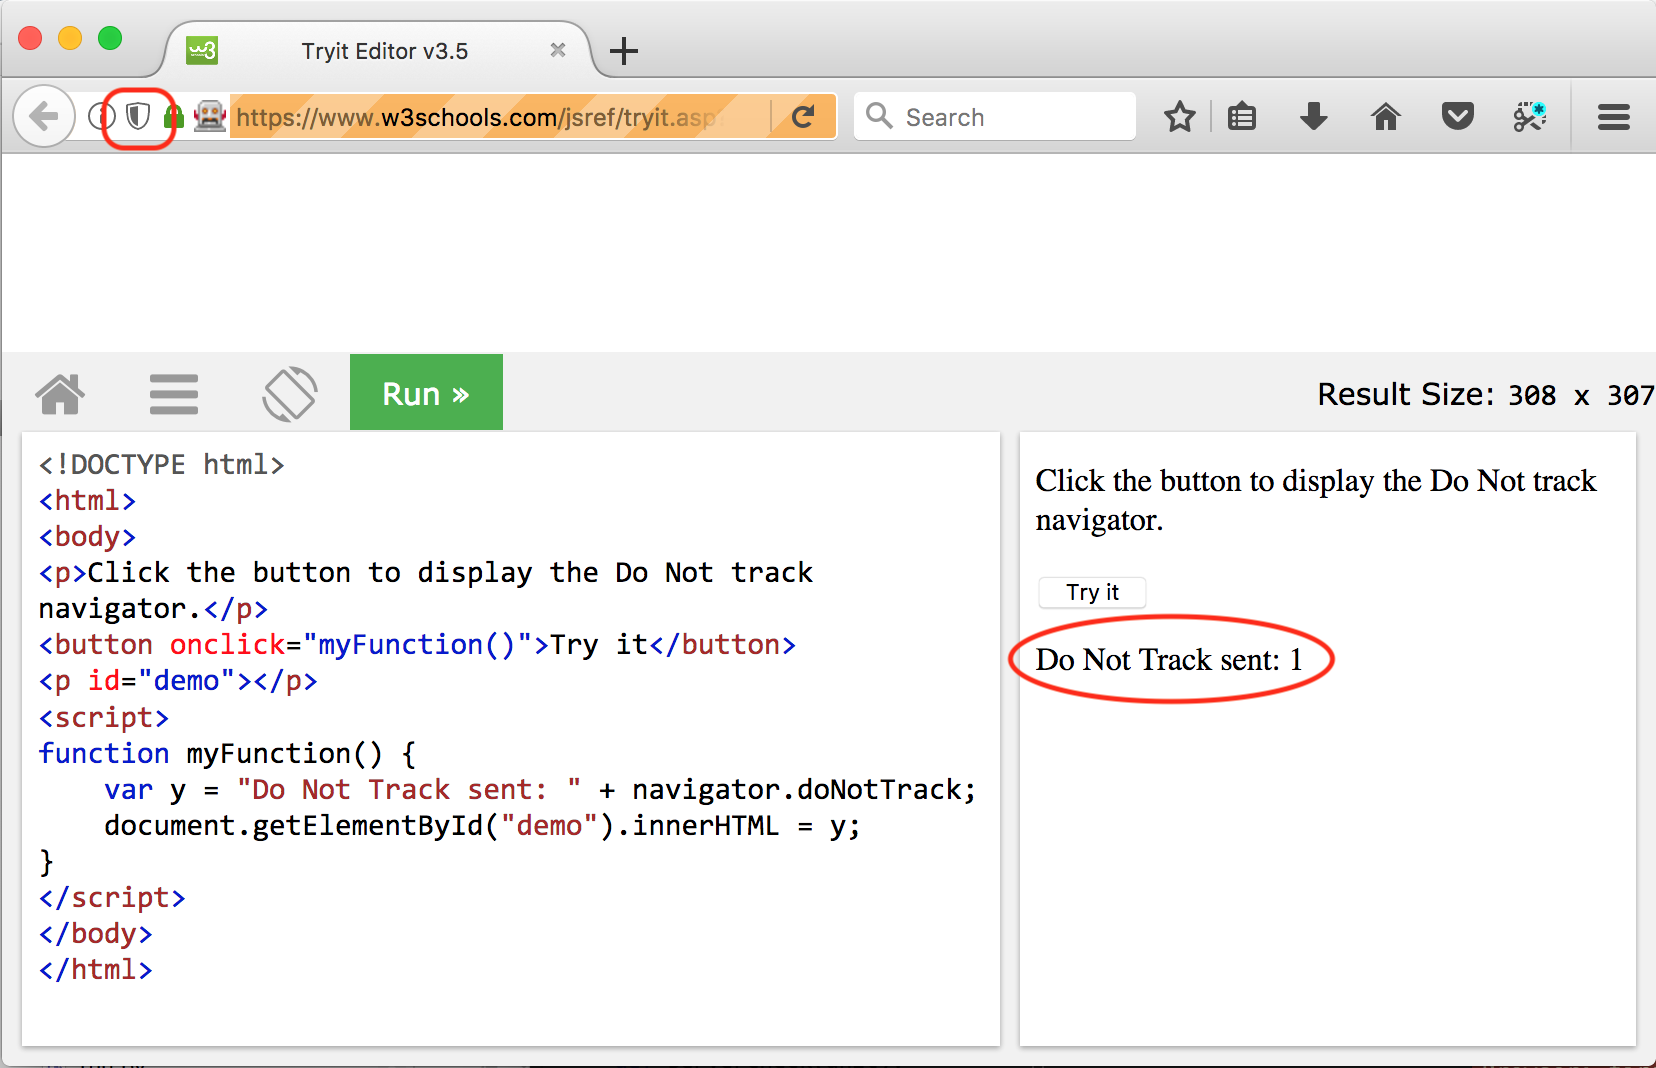 Privacy Badger does not set the doNotTrack variable in